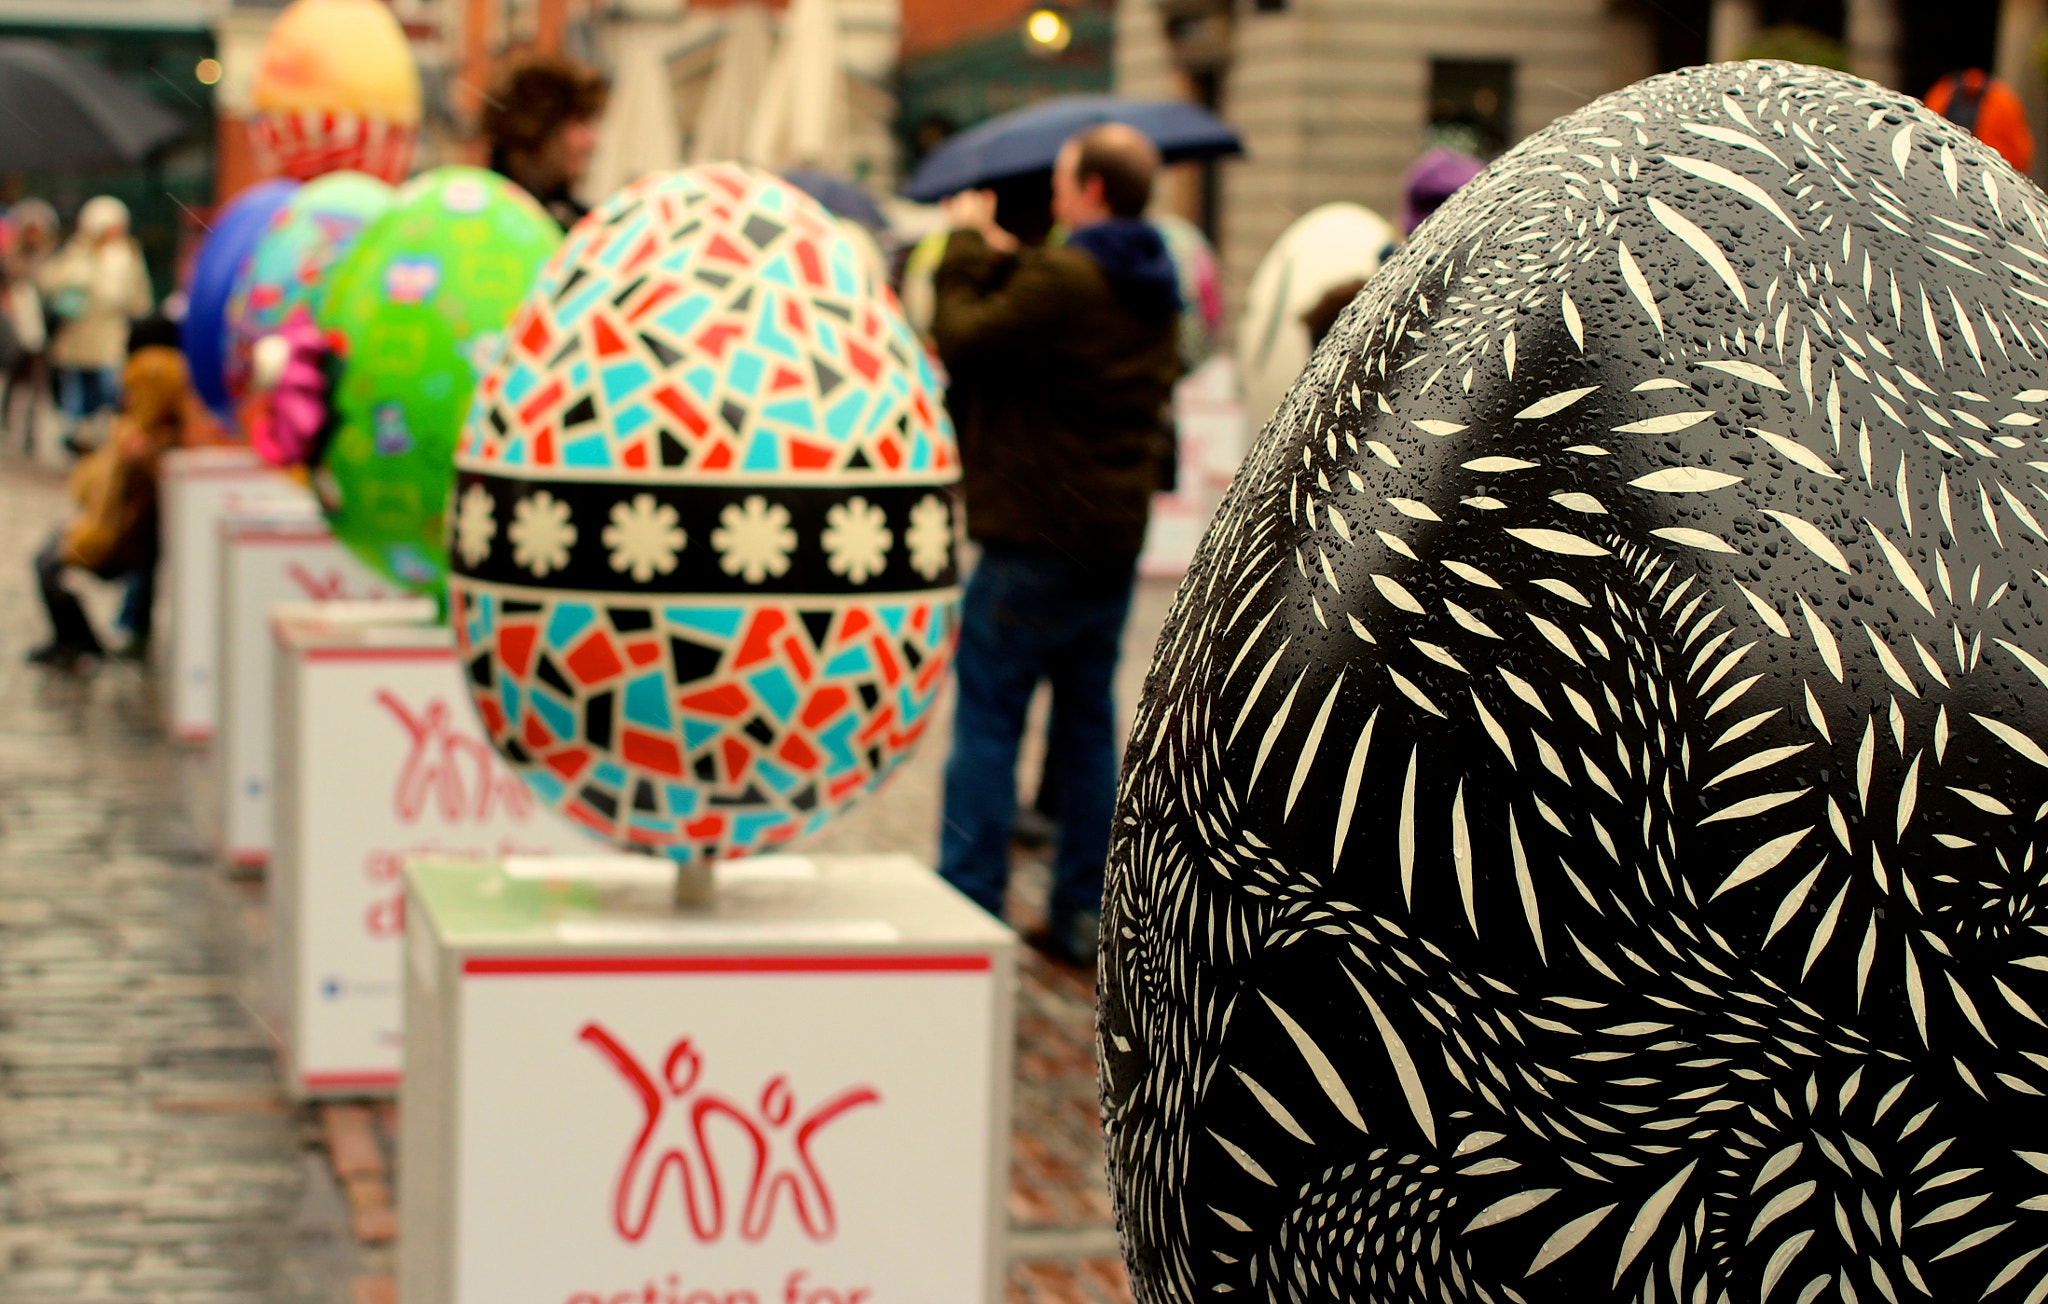 Photograph London Eggs by Christopher Collins on 500px